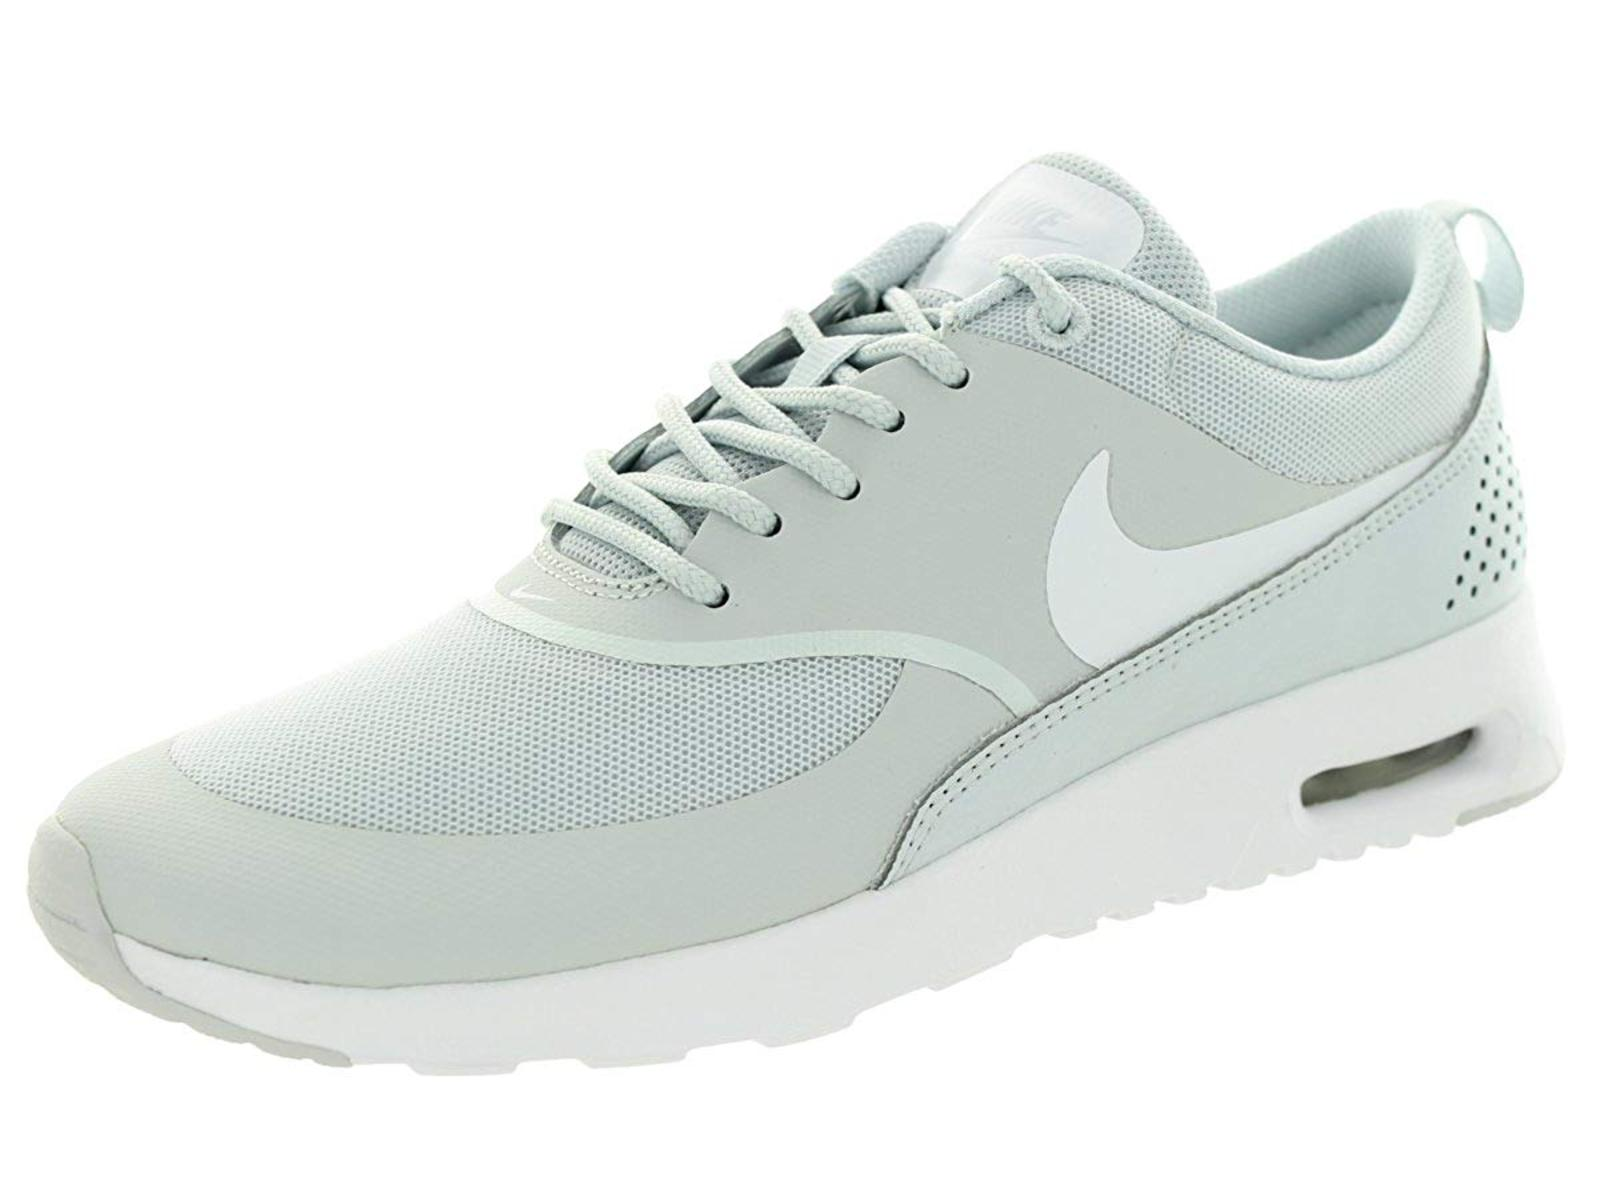 size 40 dcaf2 40dec NIKE Womens Air Max Thea Running Walking Athletic Shoes